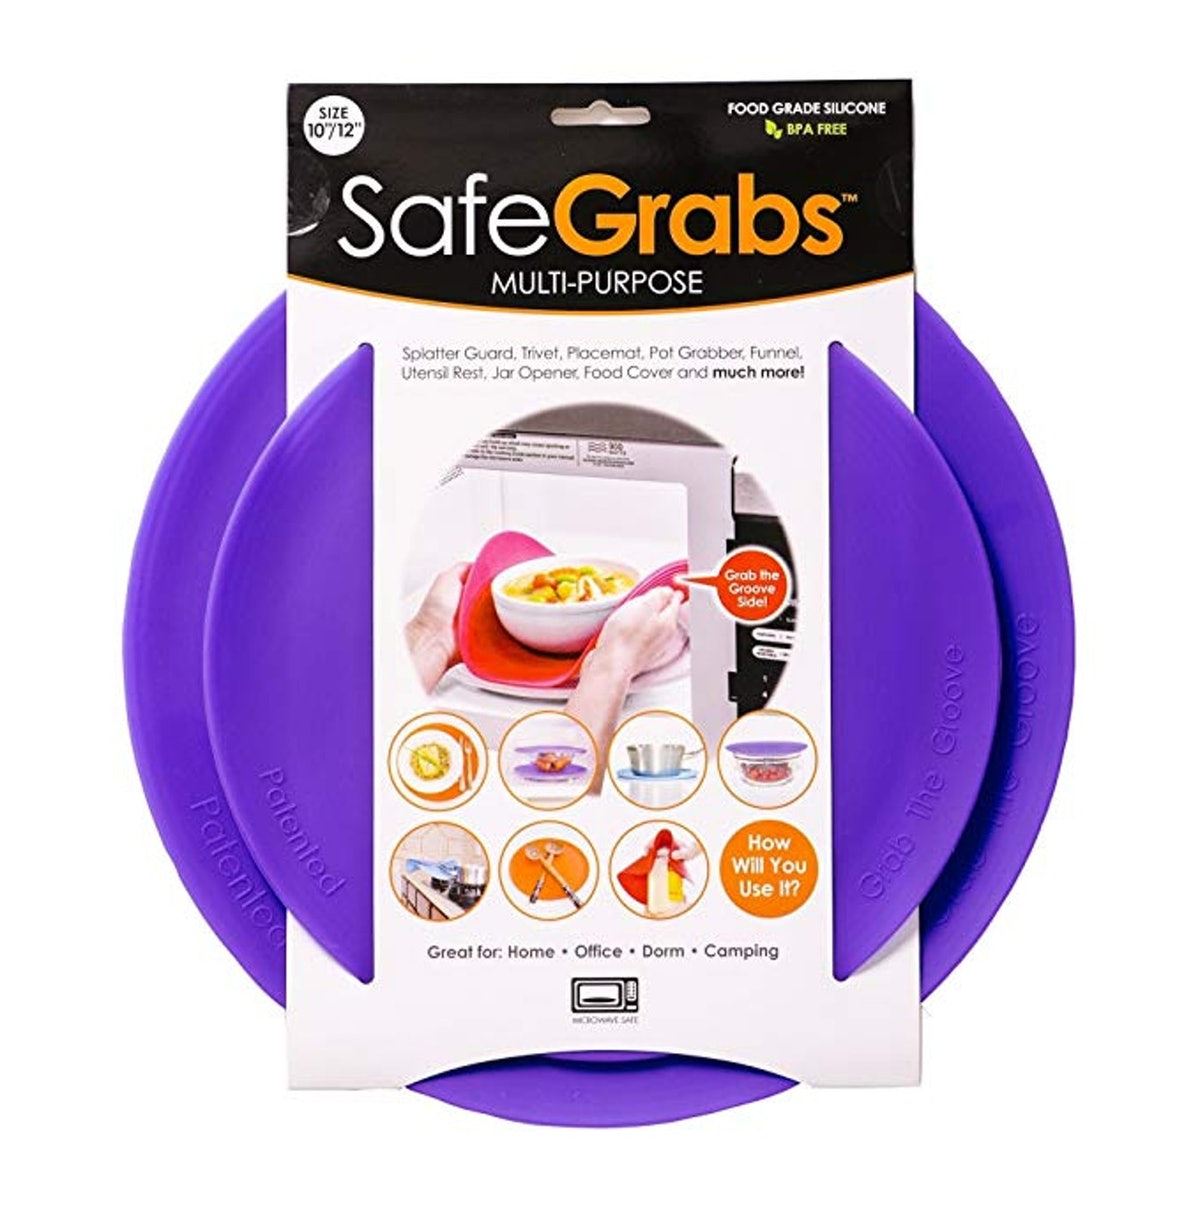 Safe Grabs Multi-Purpose Silicone Microwave Mat (2-Pack)